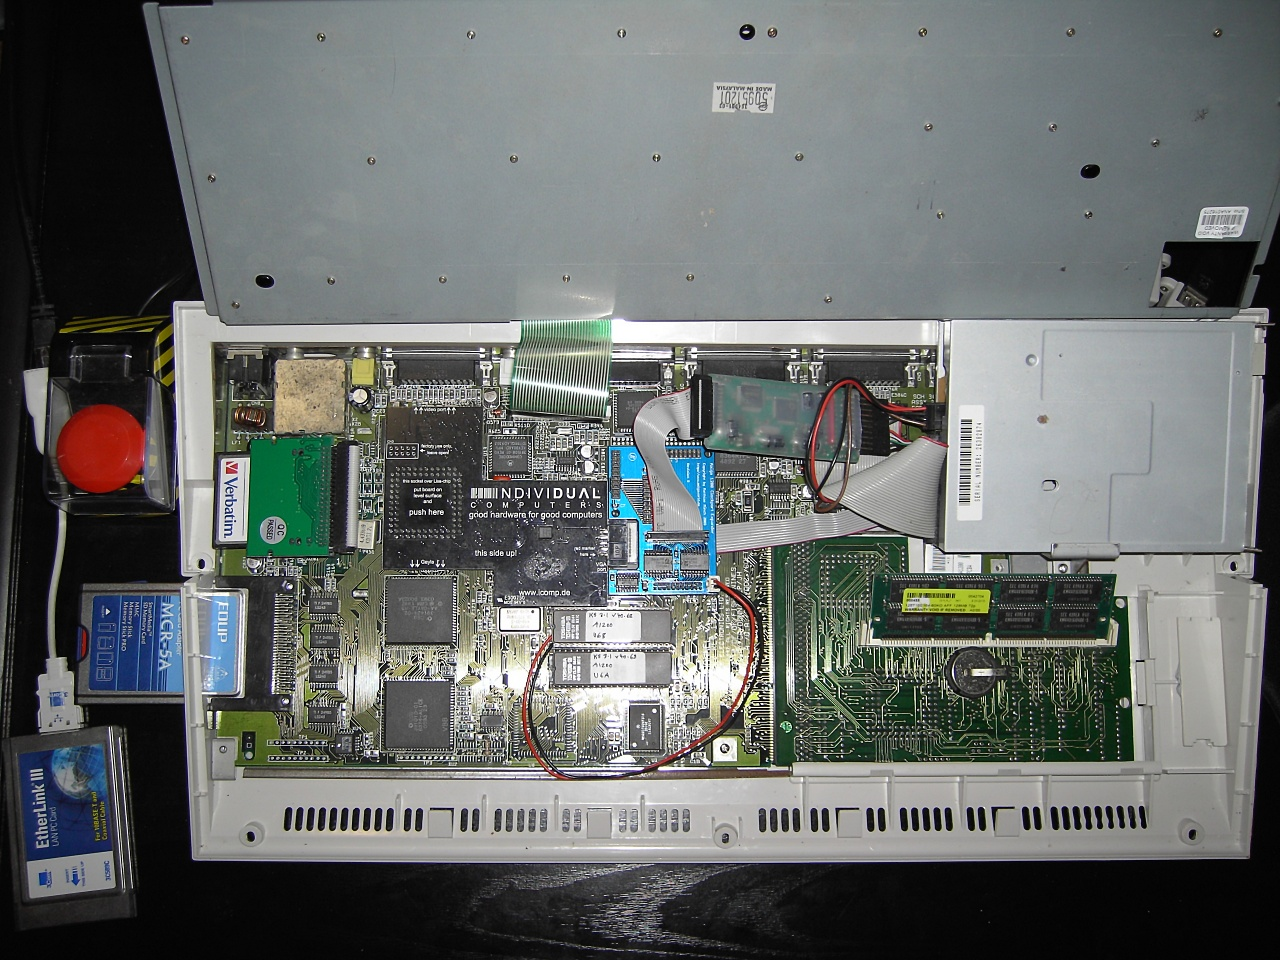 A1200 with Indivision AGA and 4-Port Clockport Expander